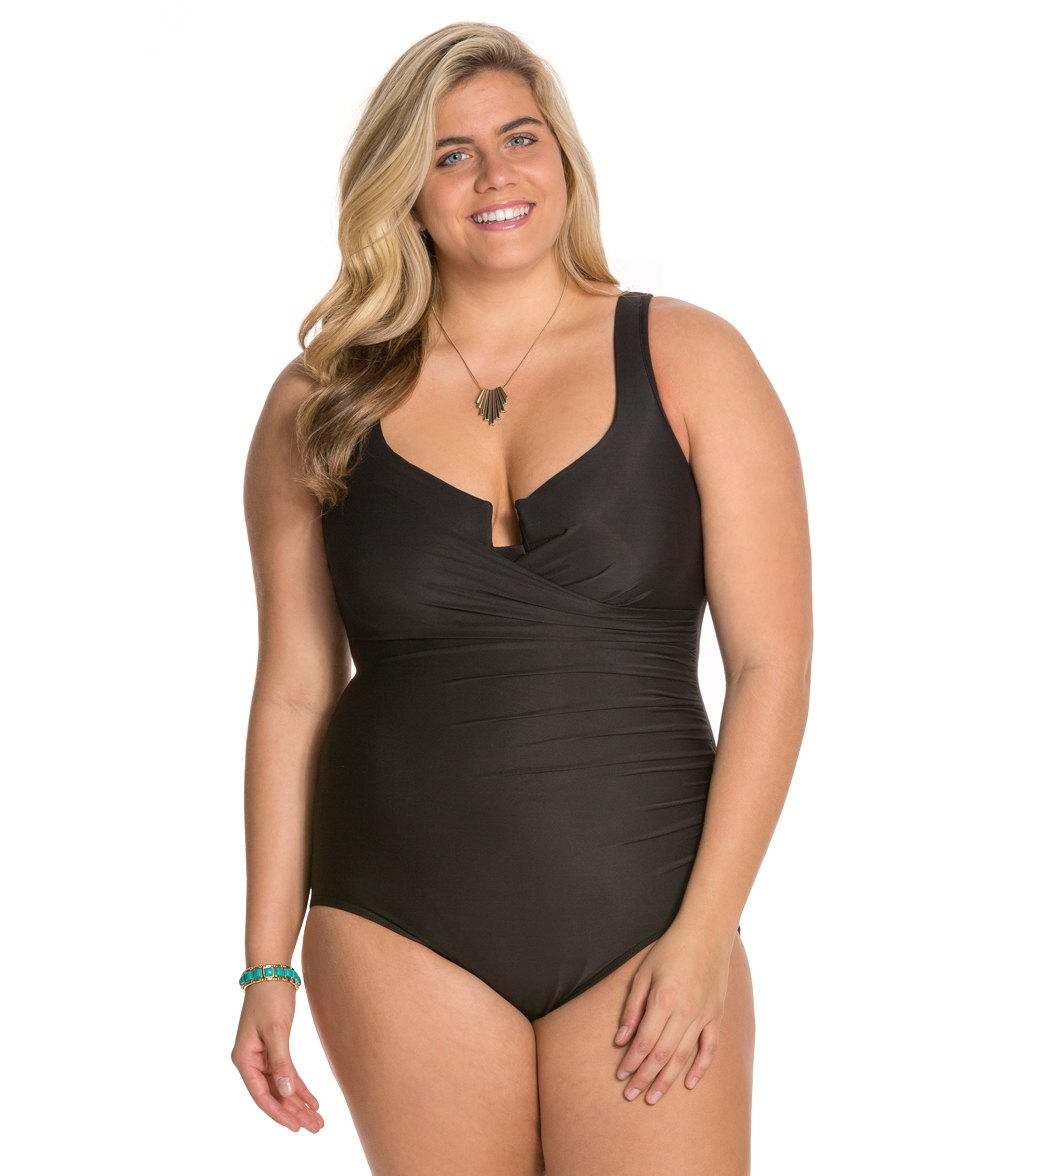 9492befe5a8d8 How to Choose Flattering Plus Size Swimwear